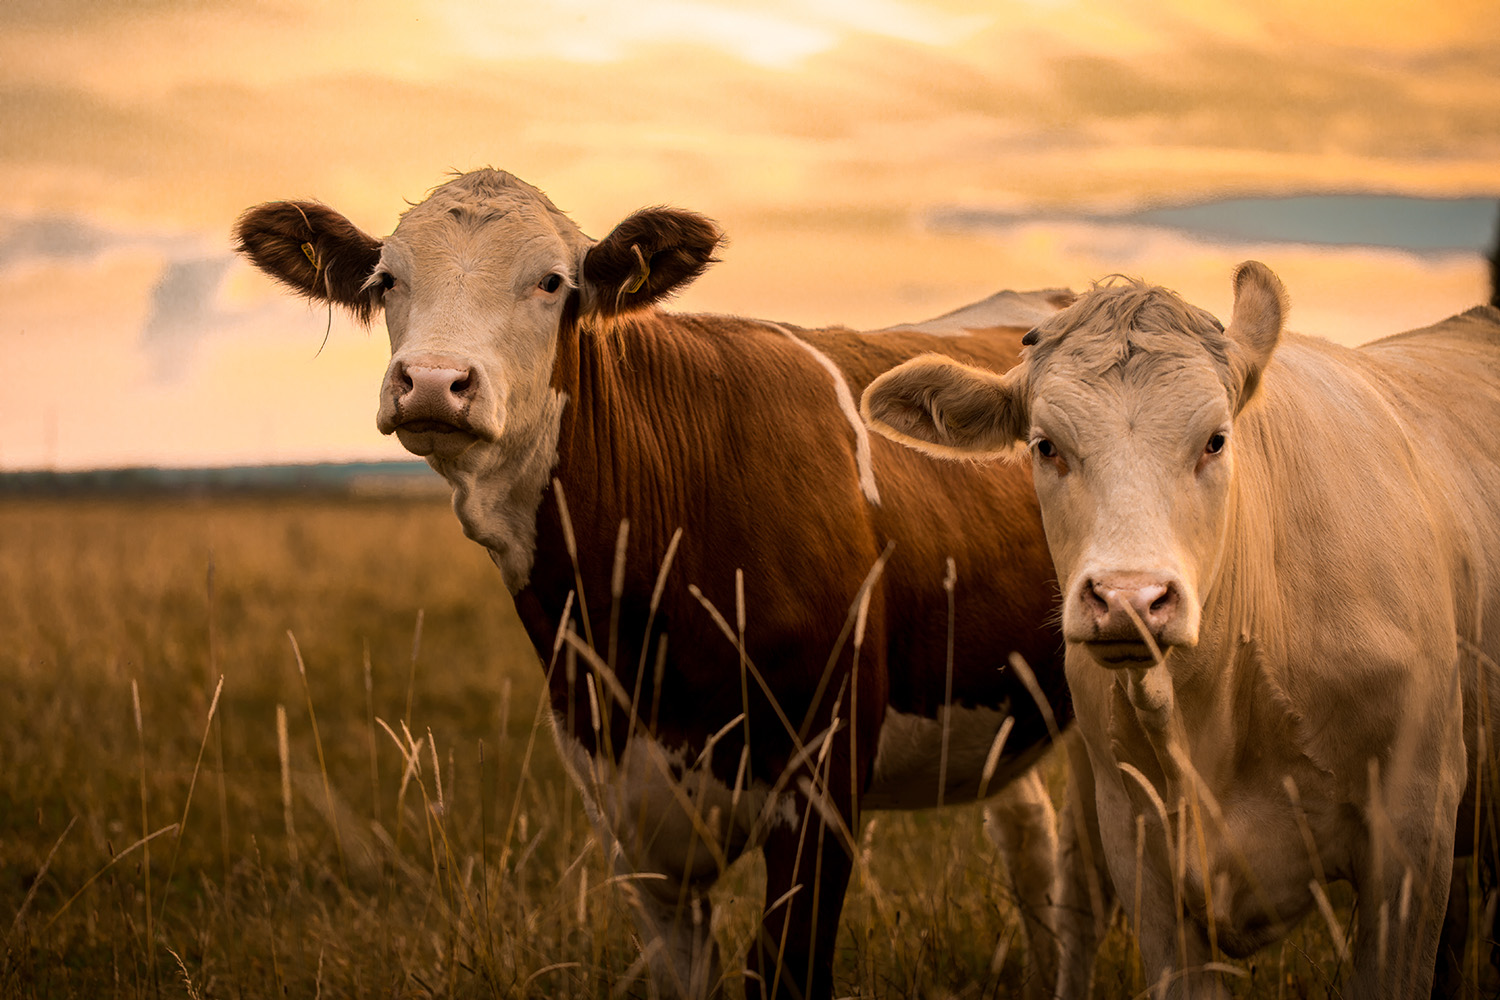 The Justice Department has issued civil subpoenas to JBS, Tyson, Cargill, and National Beef Packing regarding beef packing purchasing and selling information